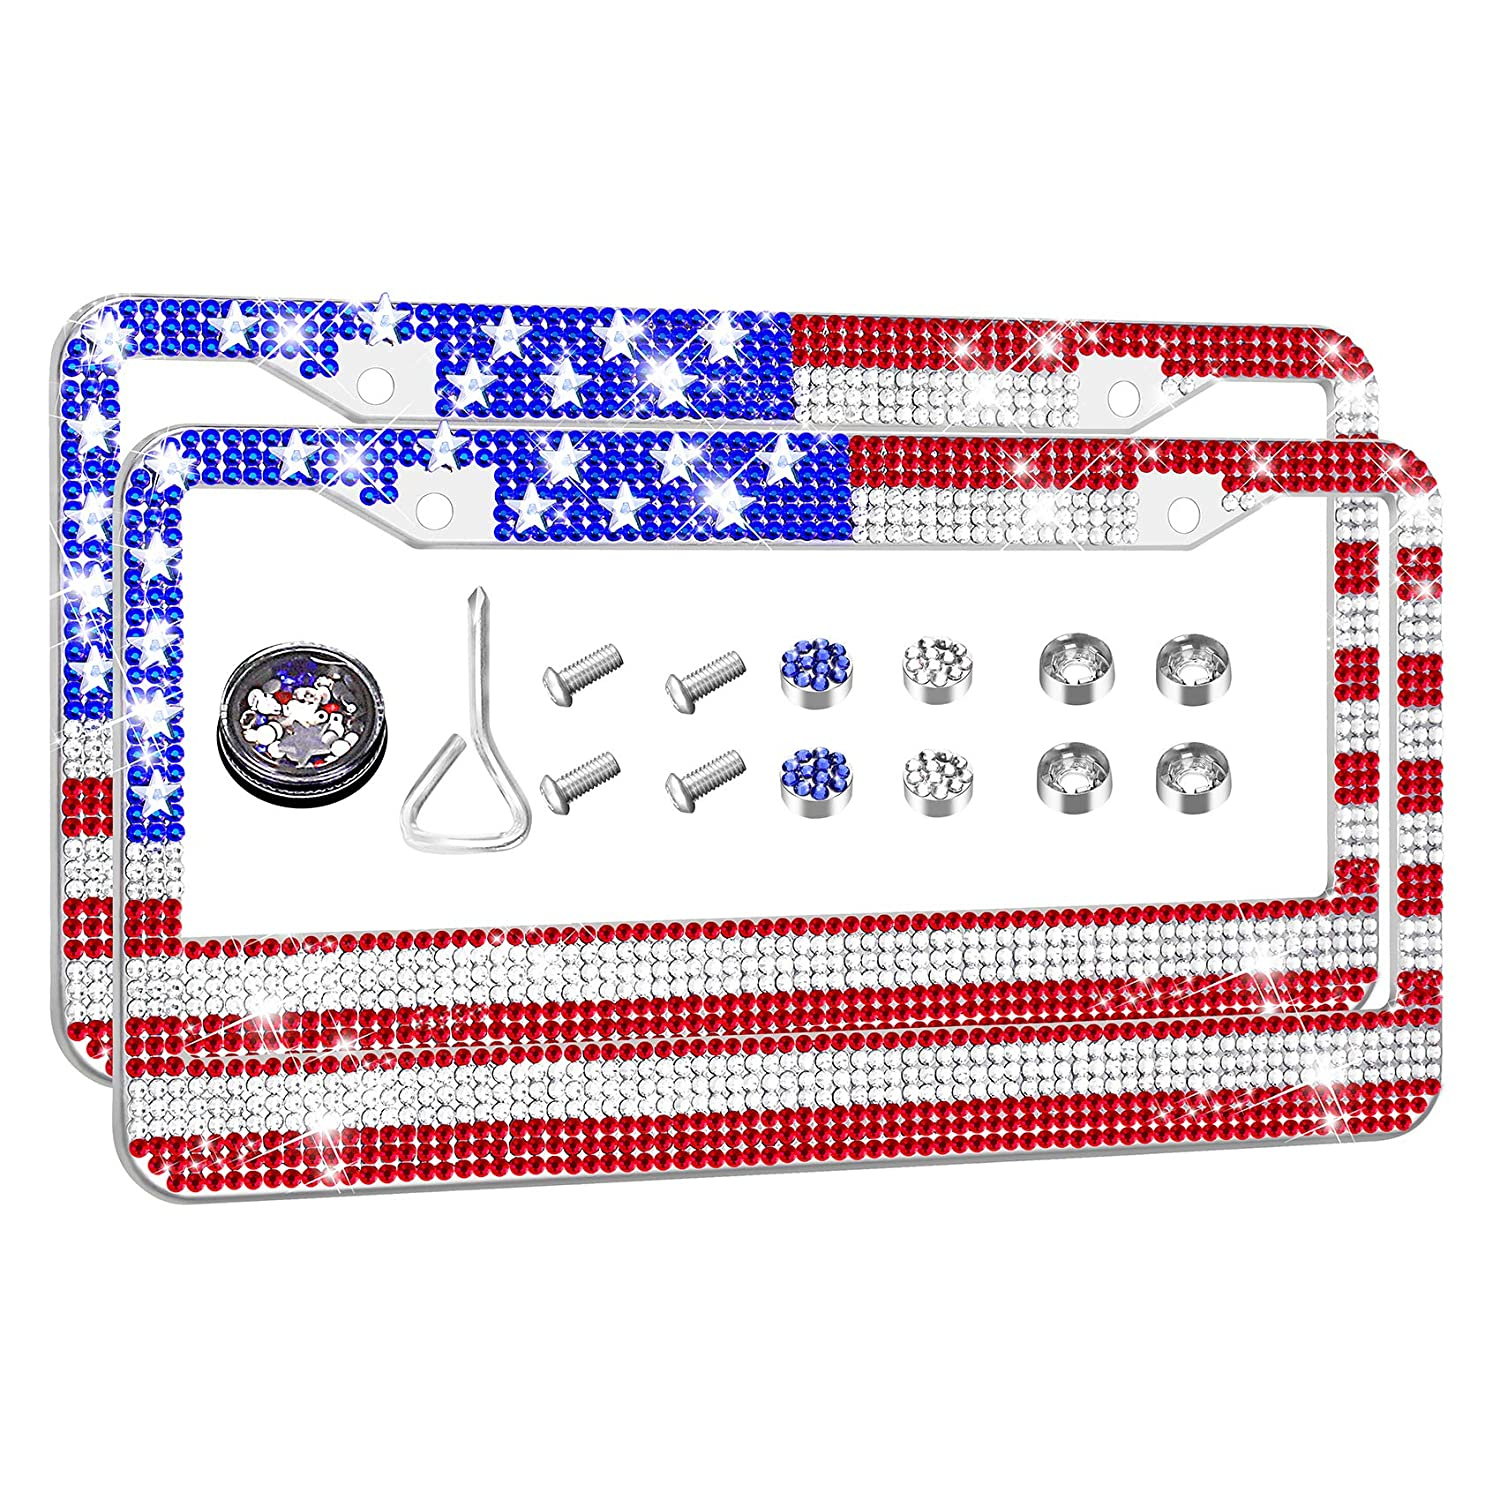 Newzon Bling License Plate Frame Rhinestones USA Flag License Plate Frames for Women /& Men Personalized Crystal Stainless Steel Car Plate Frame Waterproof 2 Hole Anti-Theft Holder in Novelty Gift Box